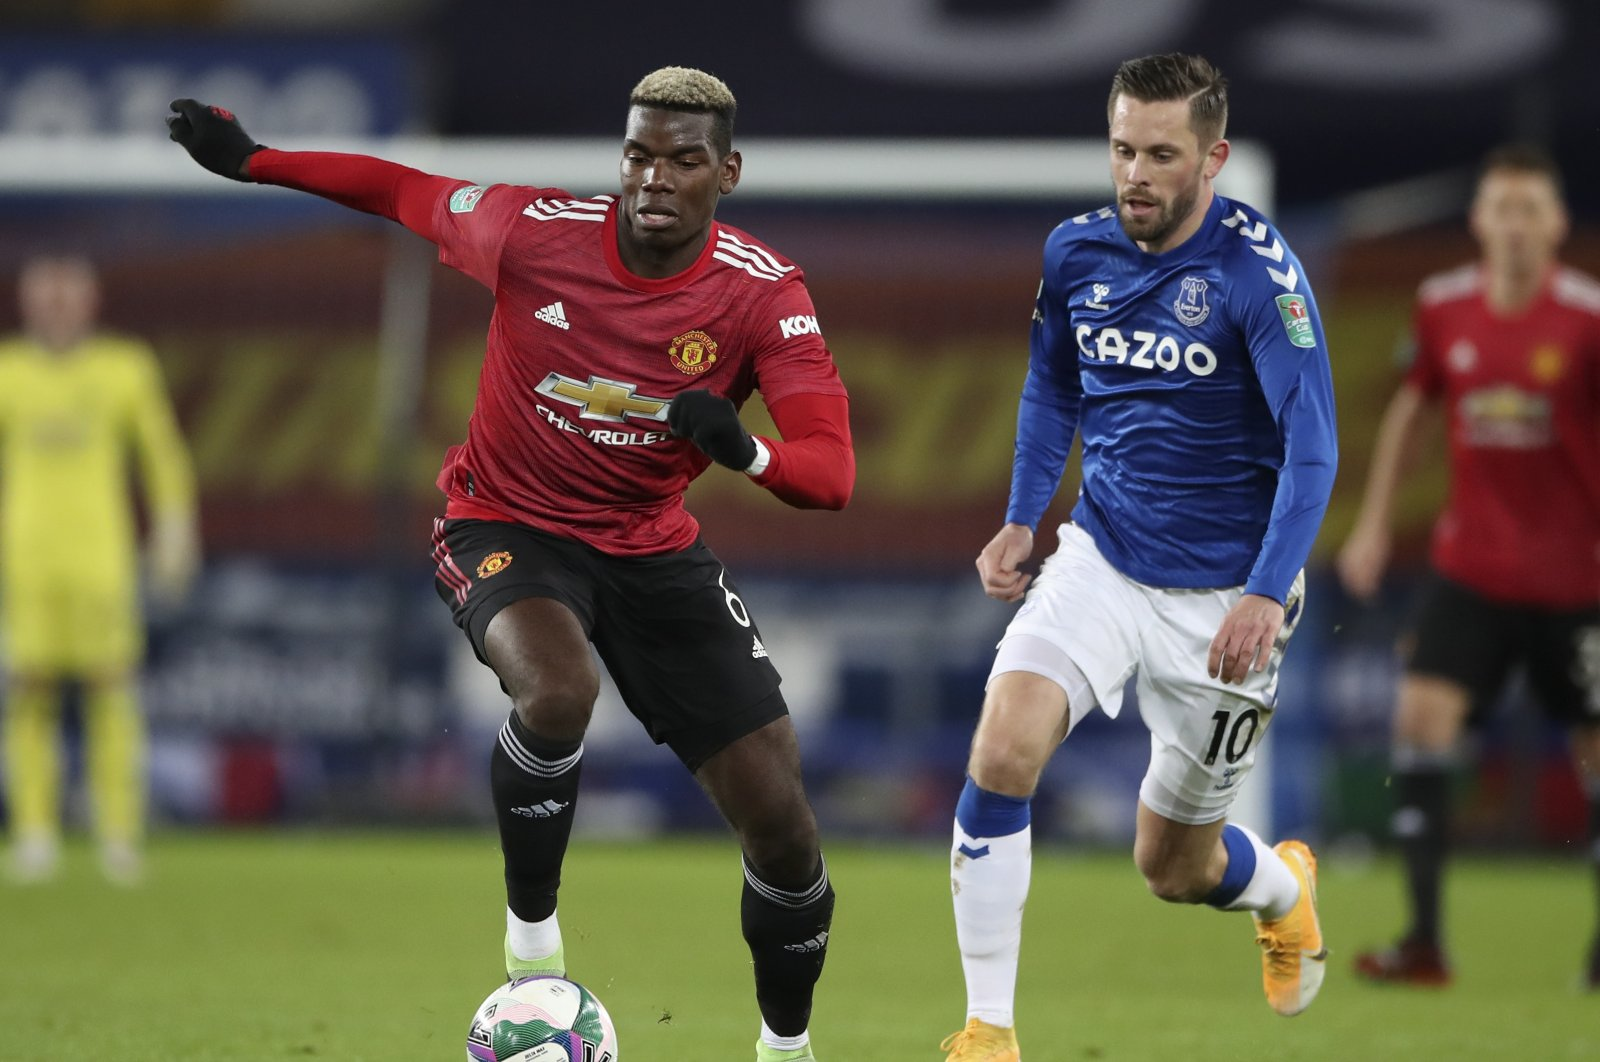 Manchester United's Paul Pogba (L) takes the ball away from Everton's Gylfi Sigurdsson during the English League Cup quarterfinal match at Goodison Park, in Liverpool, England, Dec. 23, 2020. (AP Photo)